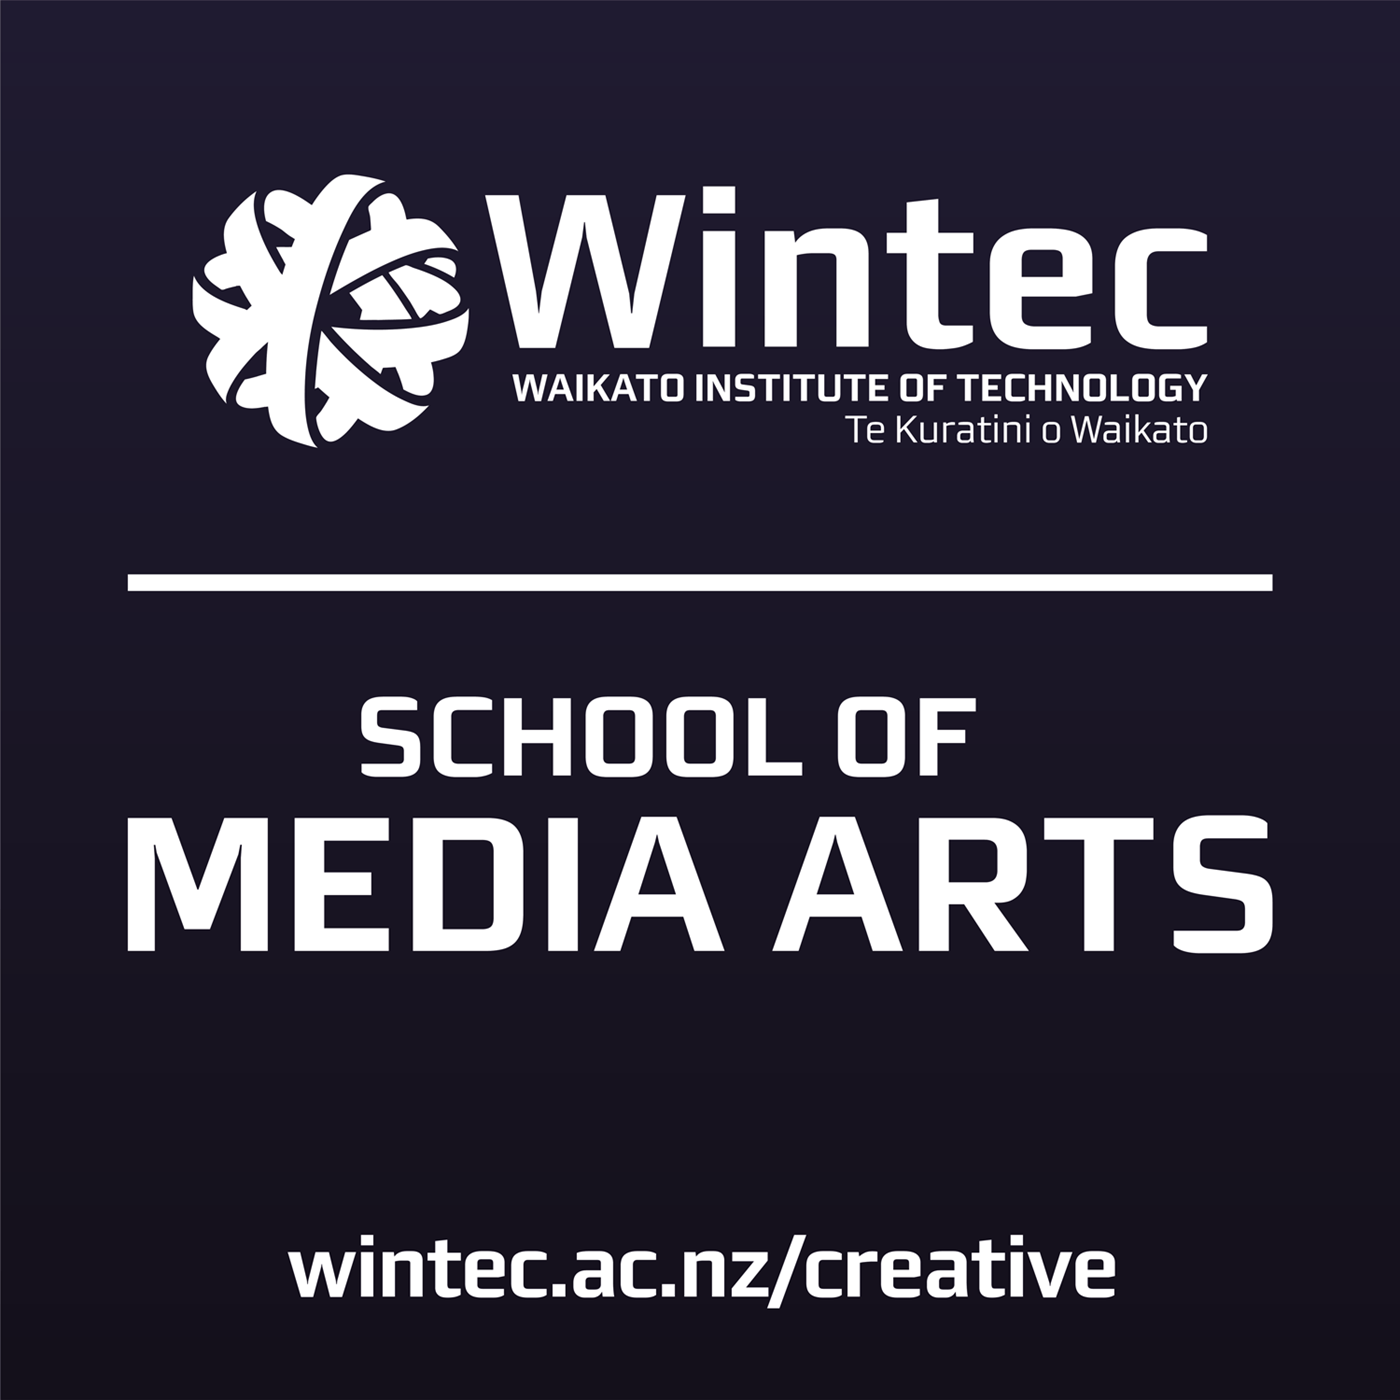 Wintec School of Media Arts